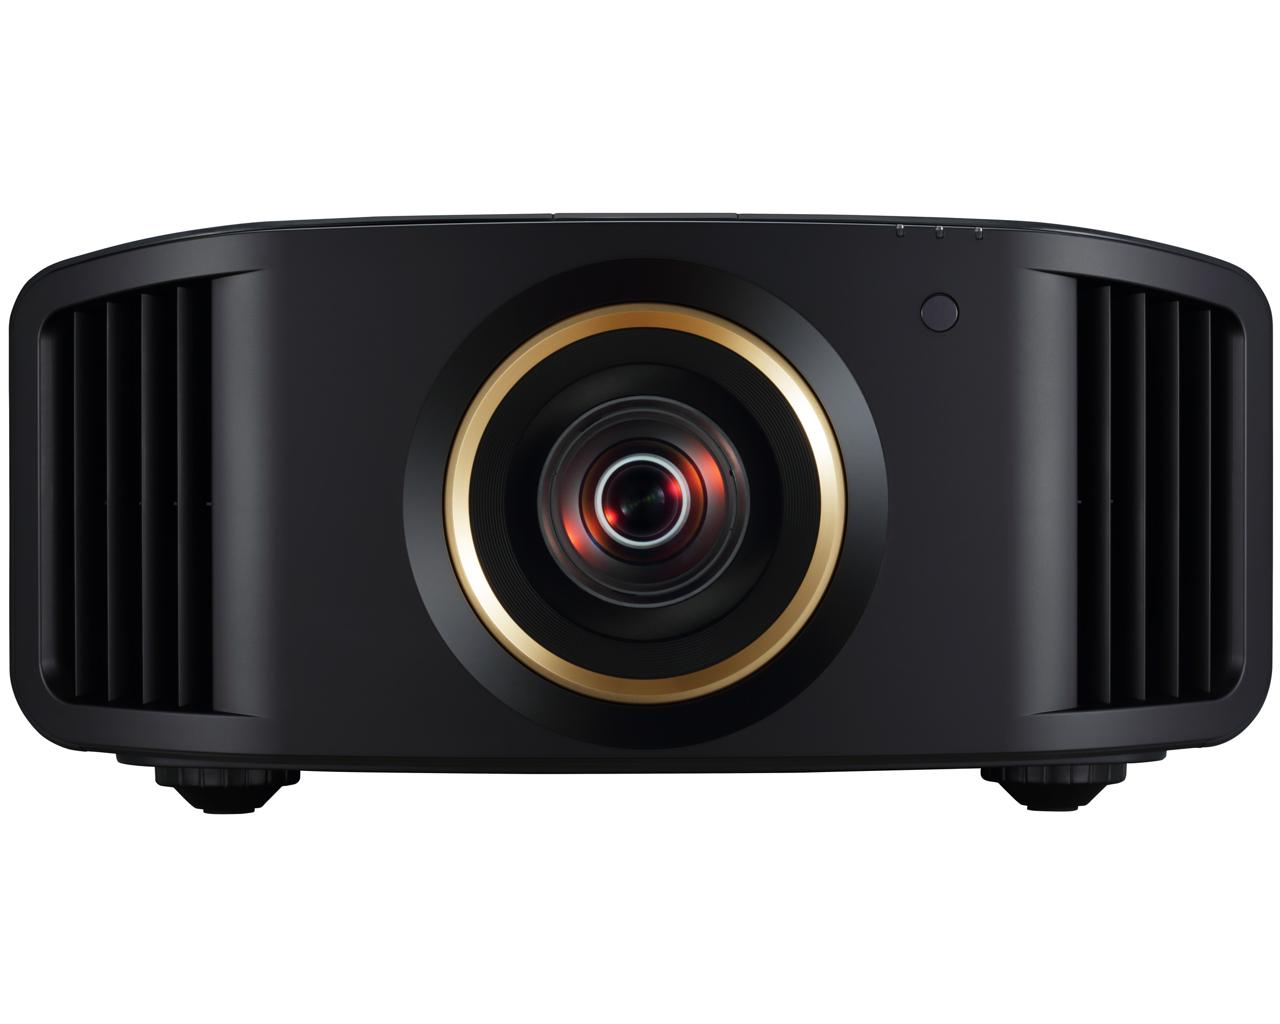 DLA-RS1000 REFERENCE SERIES 4K D-ILA PROJECTOR - Nationwide